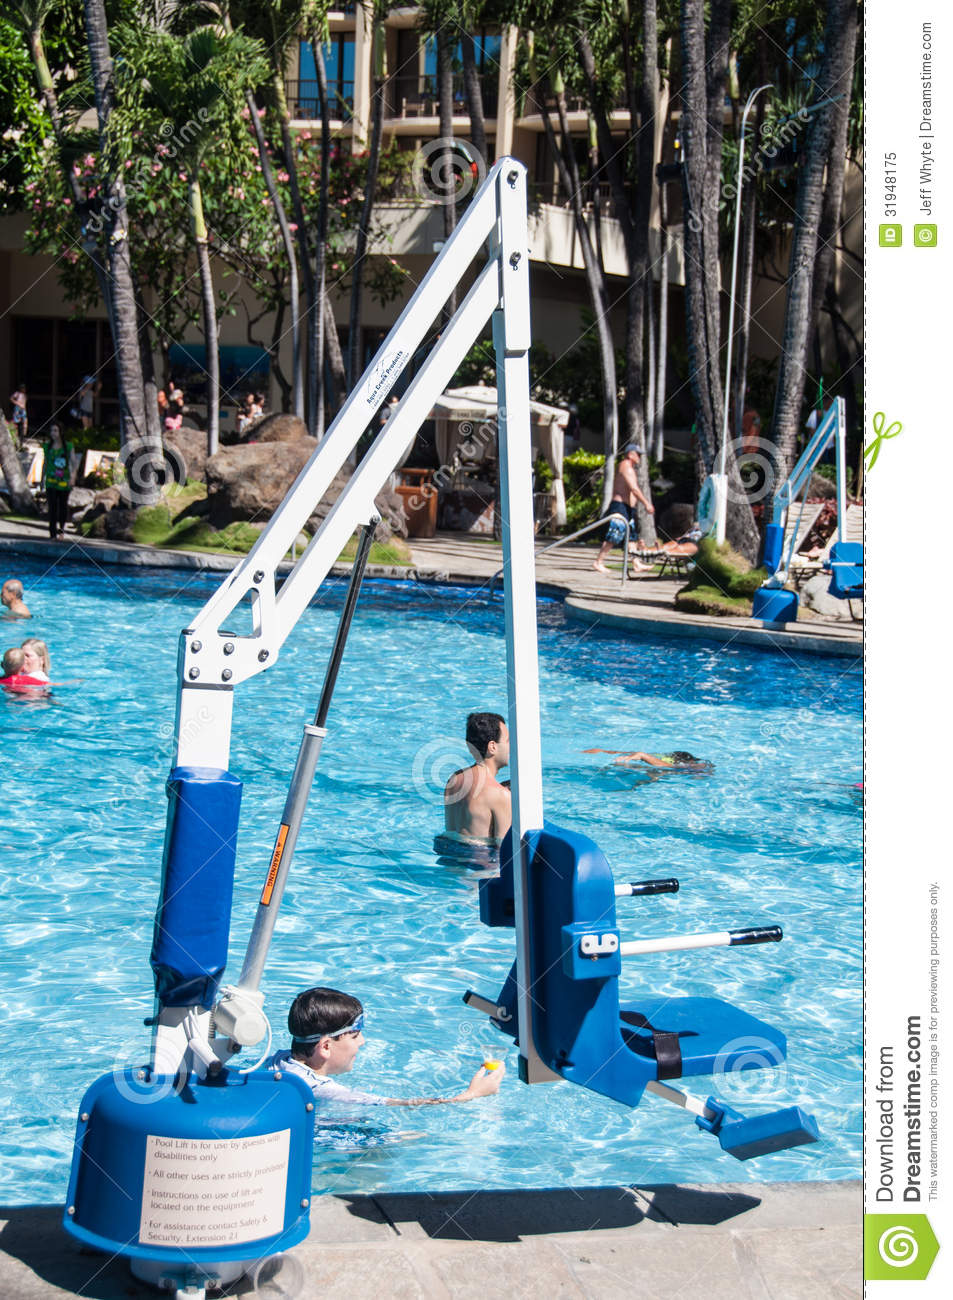 Disabled Person Pool Lift Editorial Image - Image: 31948175